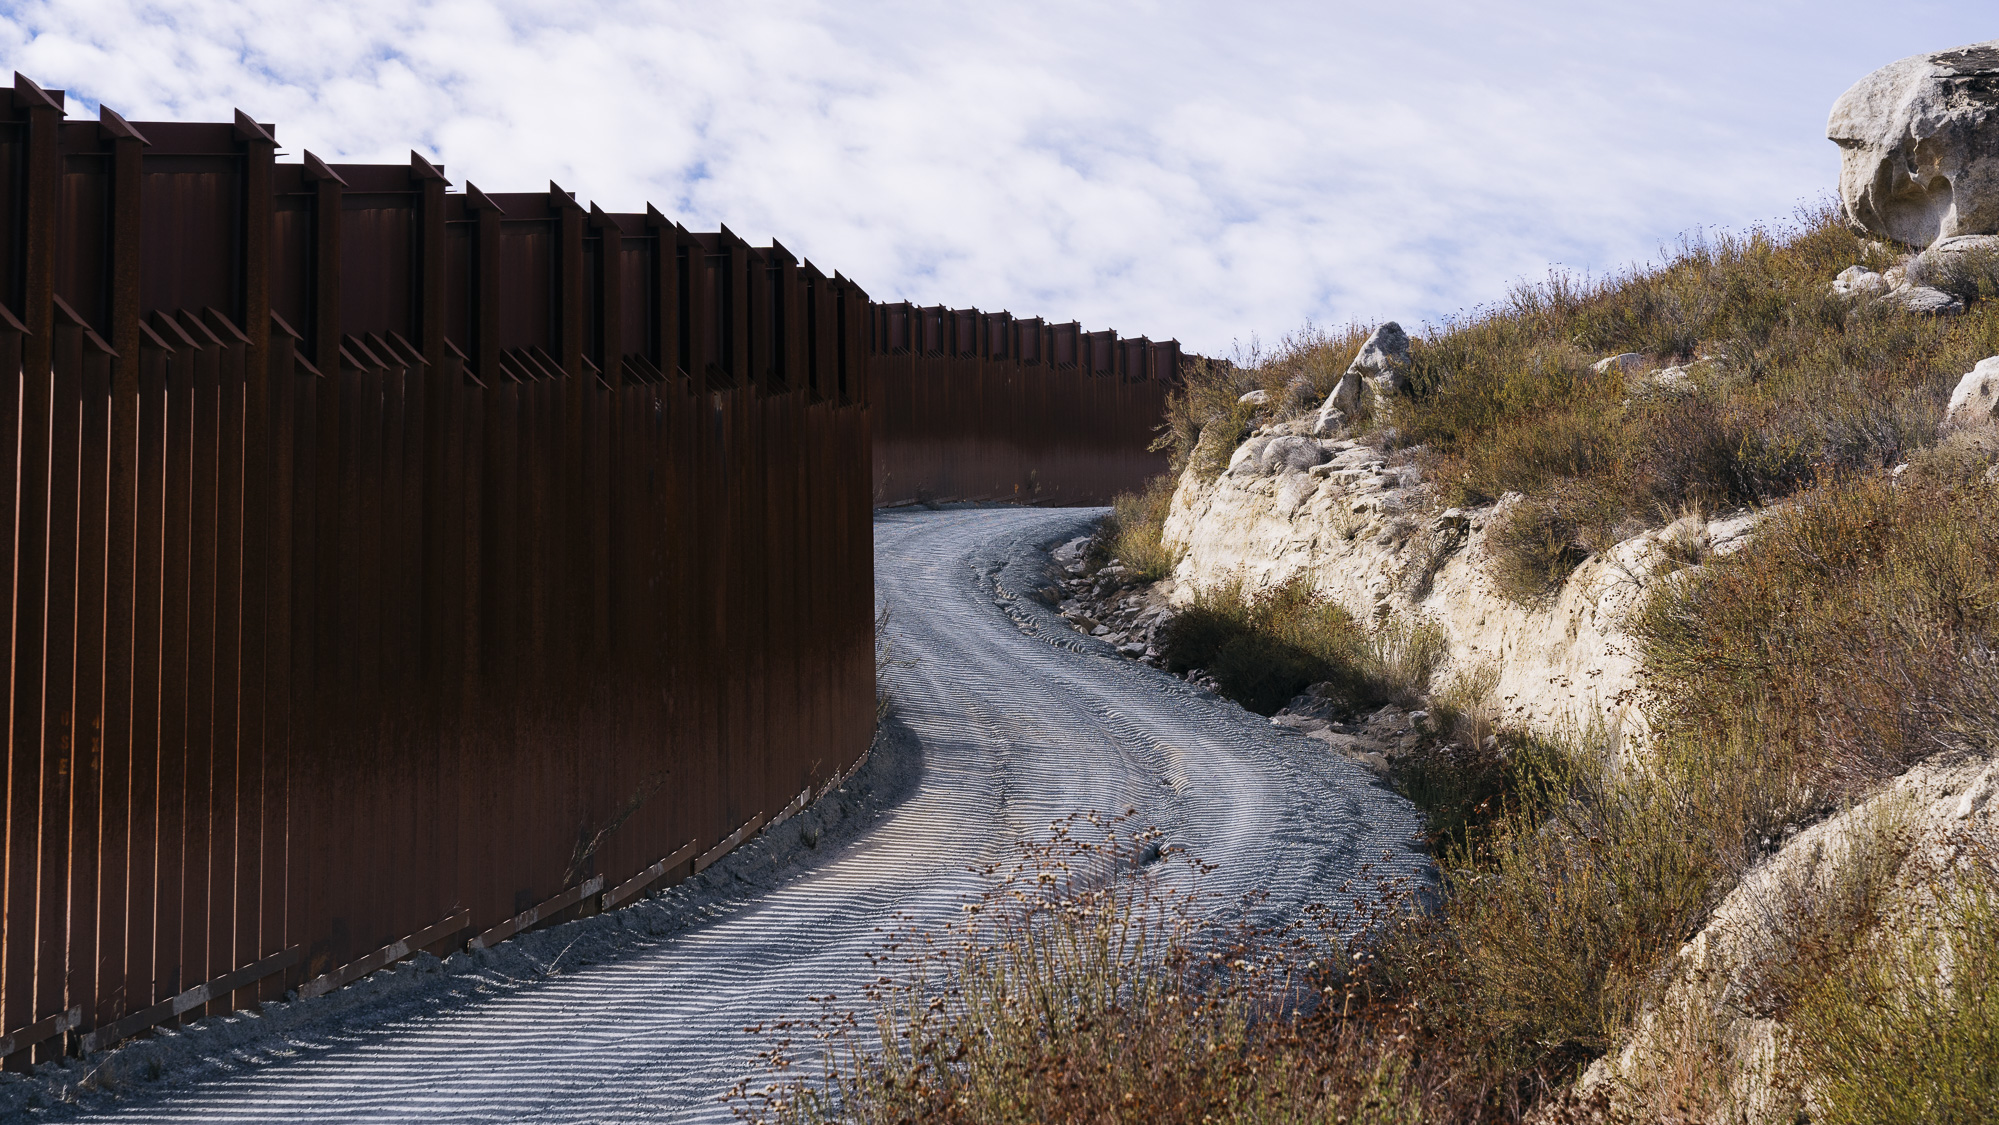 IMAGE CAPTION:   Border fence between the United Mexican States and the United States of America in Campo, California. There are nearly 700 miles of border fence already built along the 1,954 mile border between the two countries.